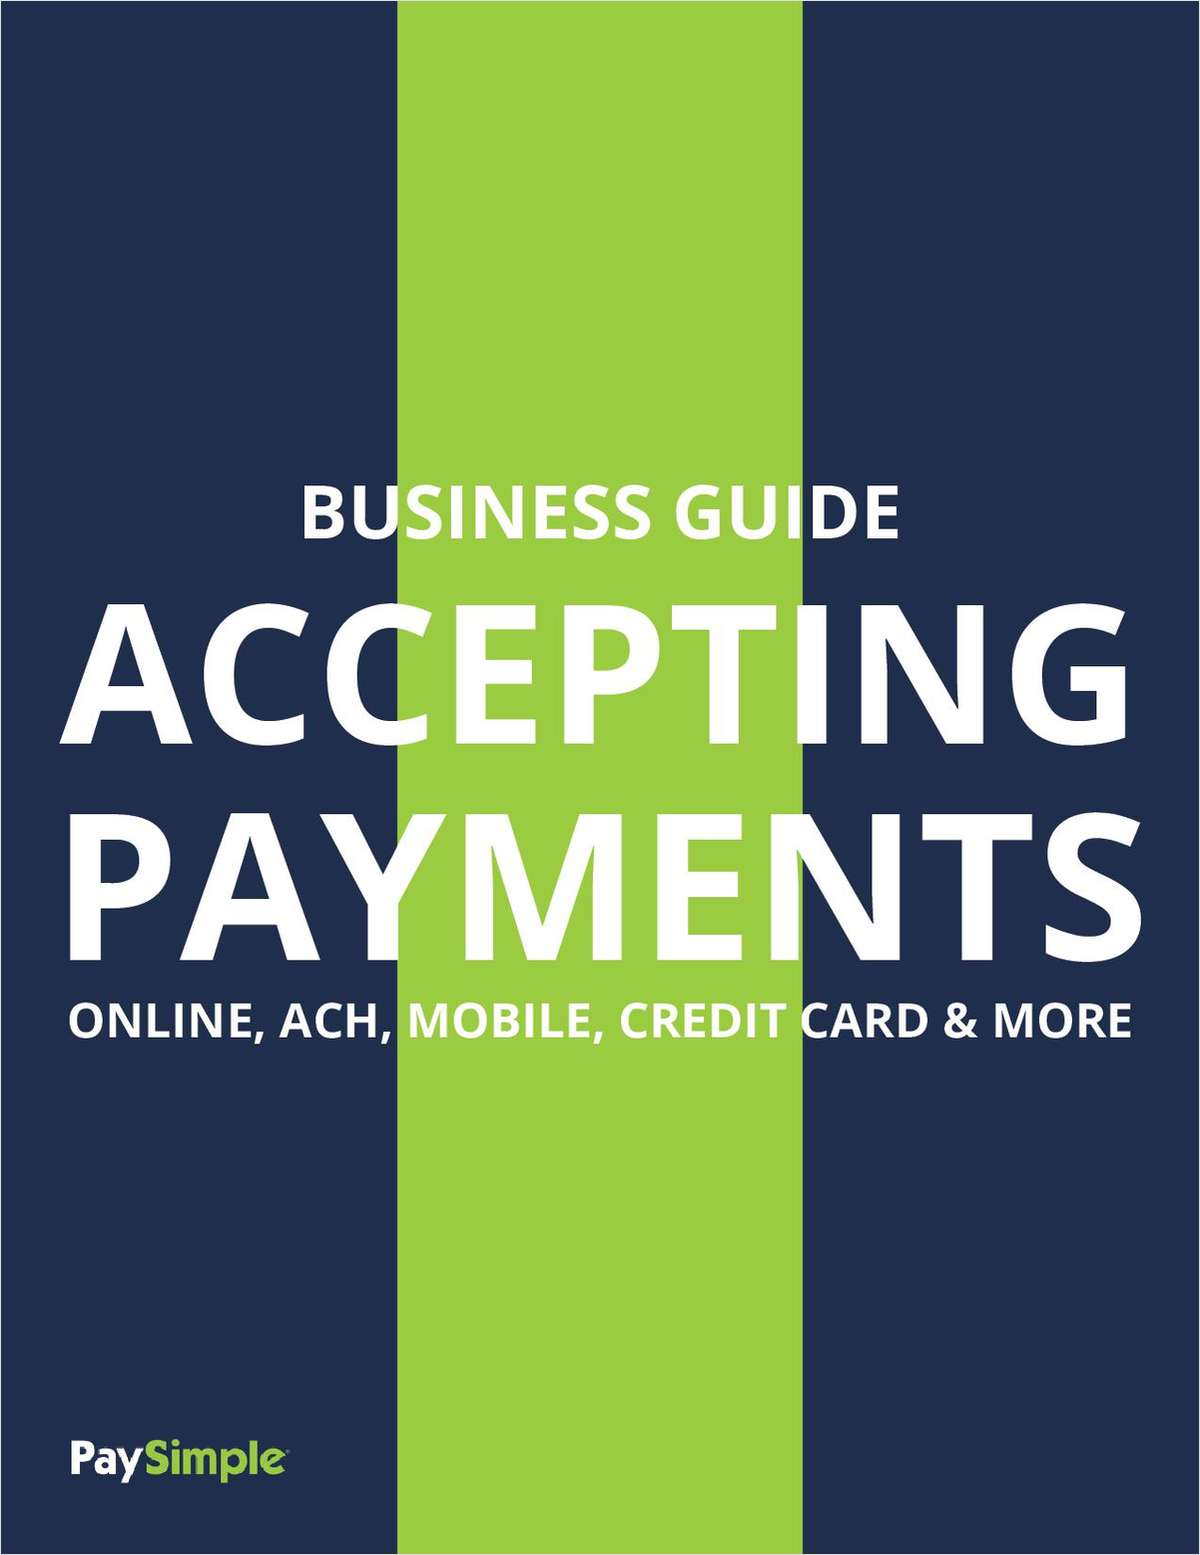 All the Ways to Accept Payments